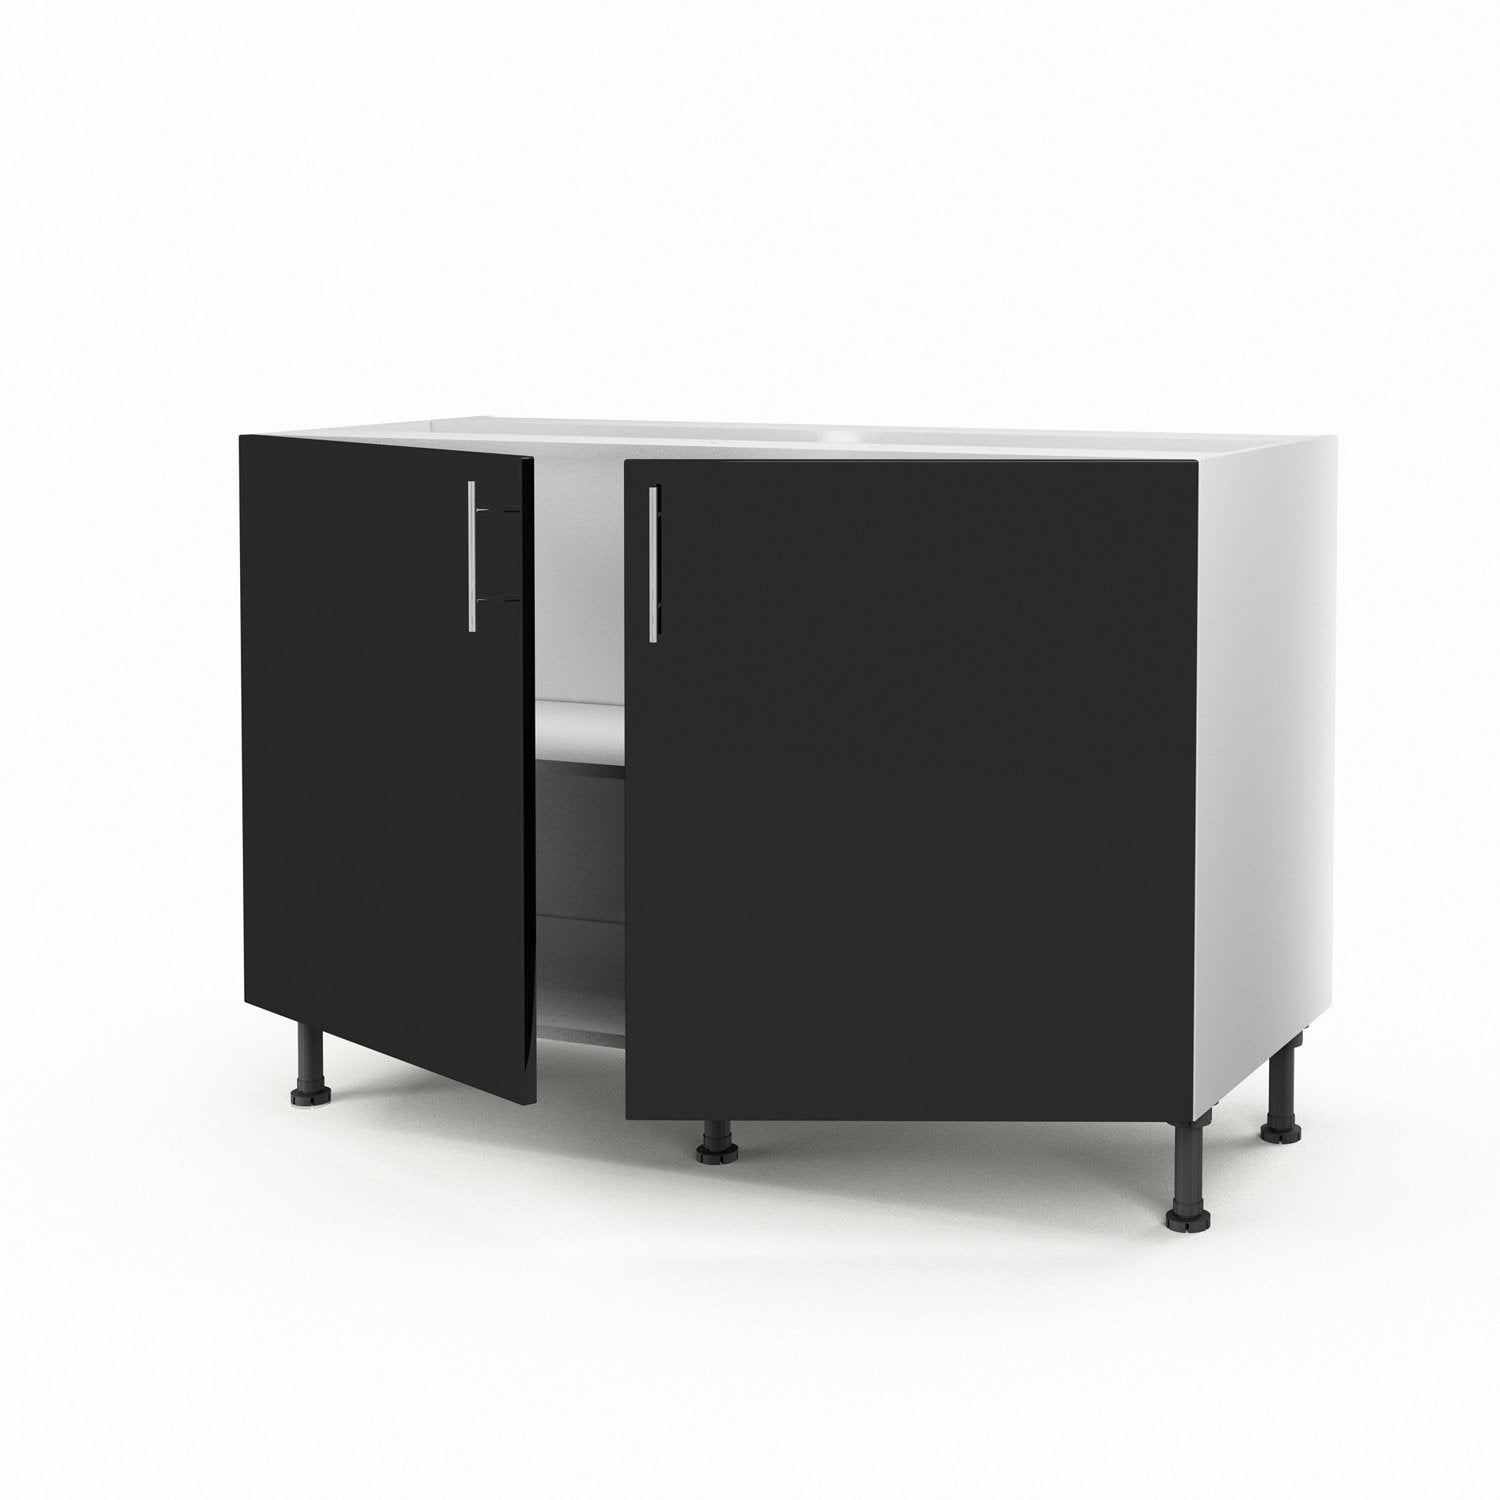 meuble de cuisine sous vier noir 2 portes rio x x cm leroy merlin. Black Bedroom Furniture Sets. Home Design Ideas